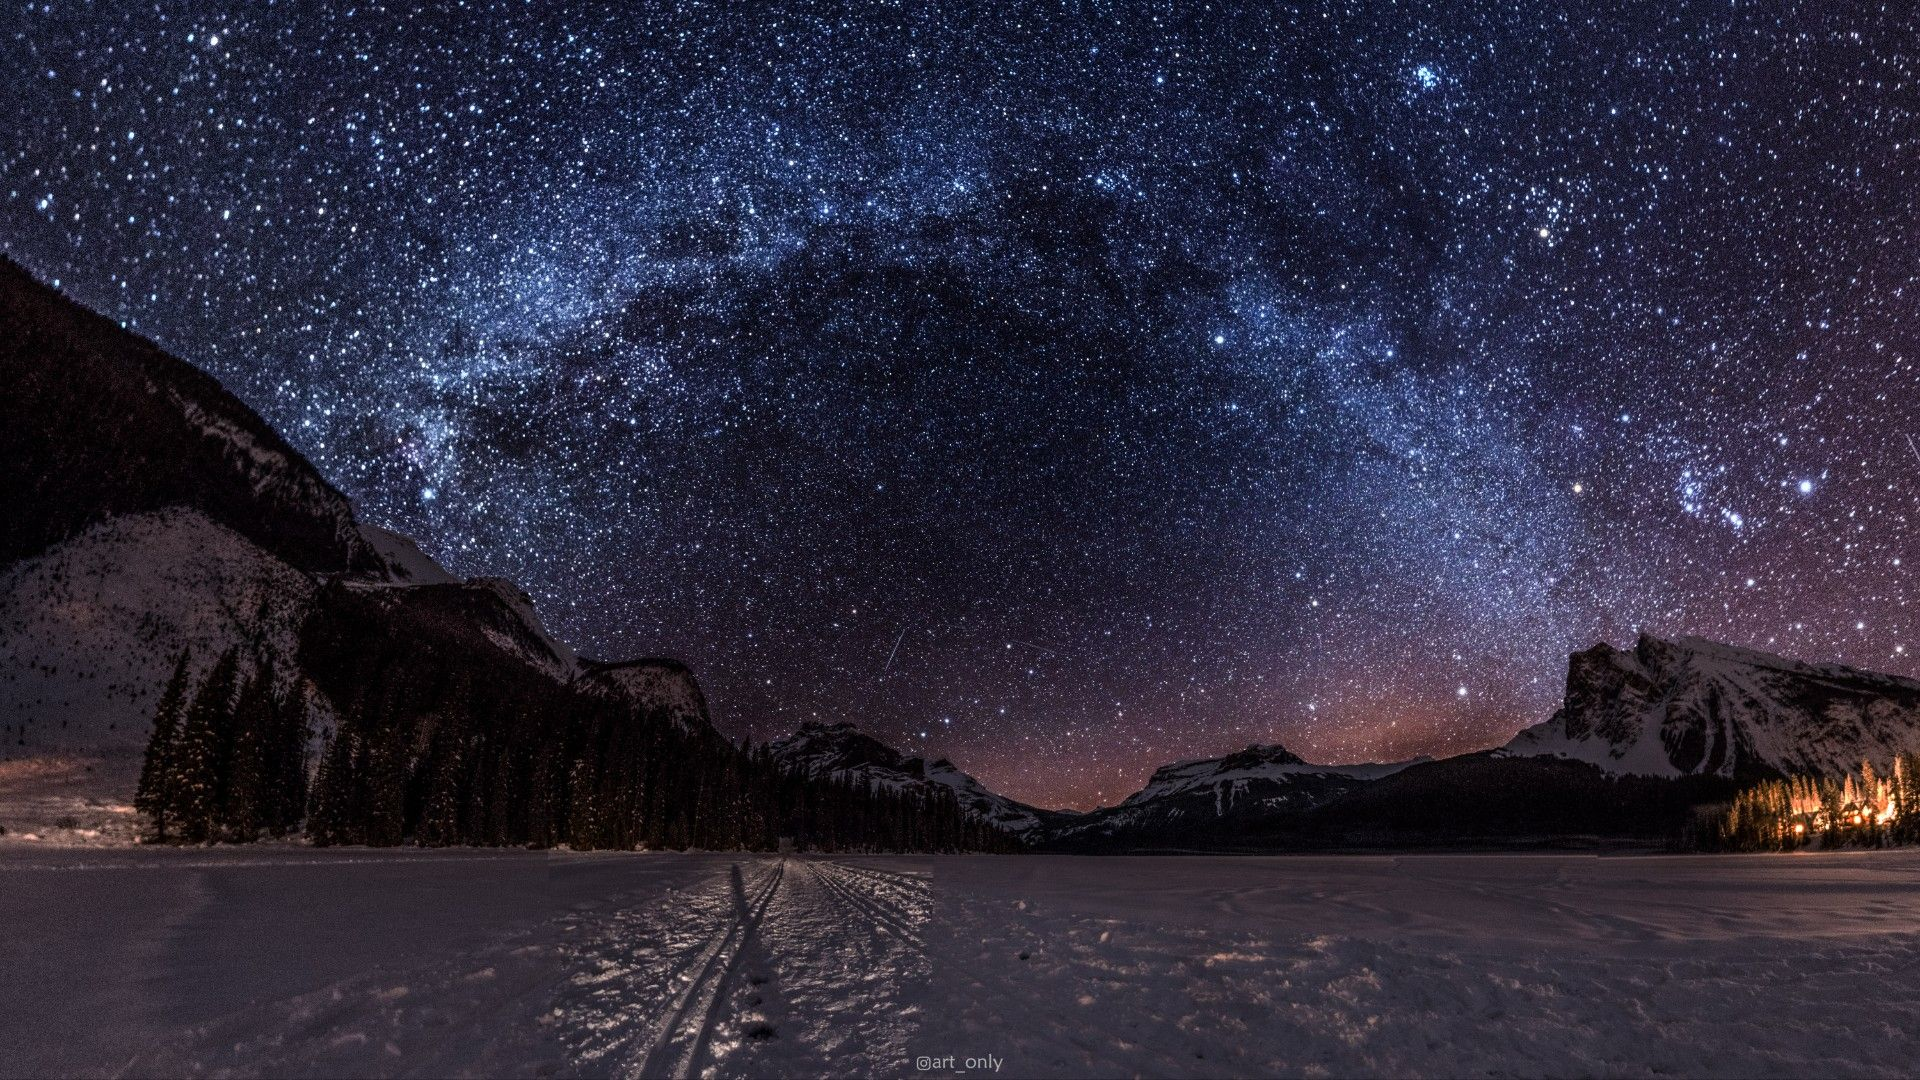 The Night Sky At Emerald Lake Bc On A Cold Winter Night Oc 19201080 Reddit Emerald Lake Bc Nature Photos Snowy Field